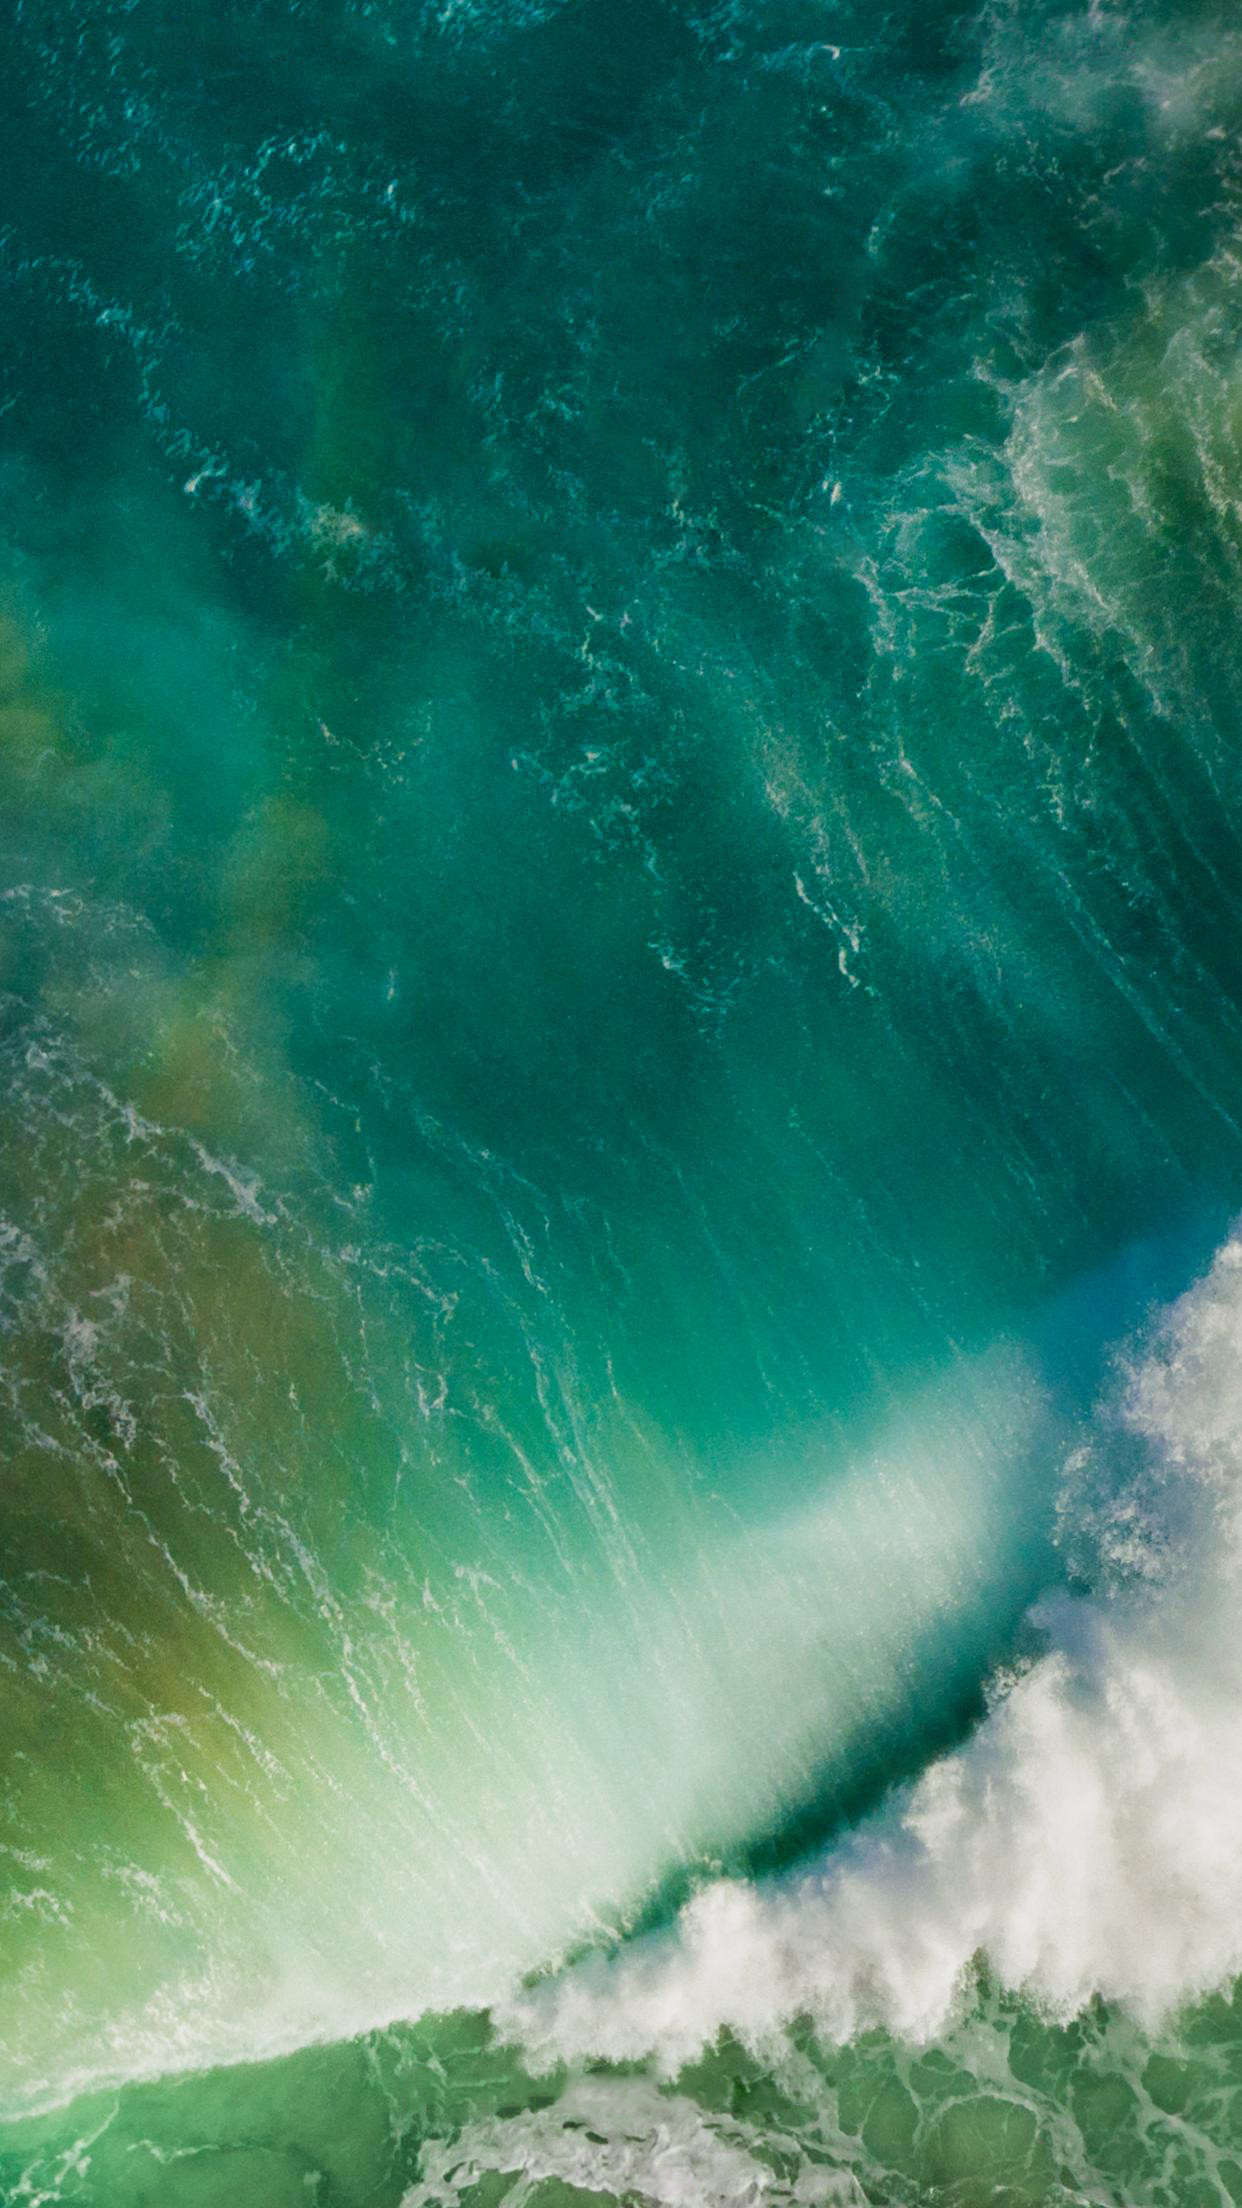 1080x Colorful Surf Wave Iphone 6 Hd Wallpaper